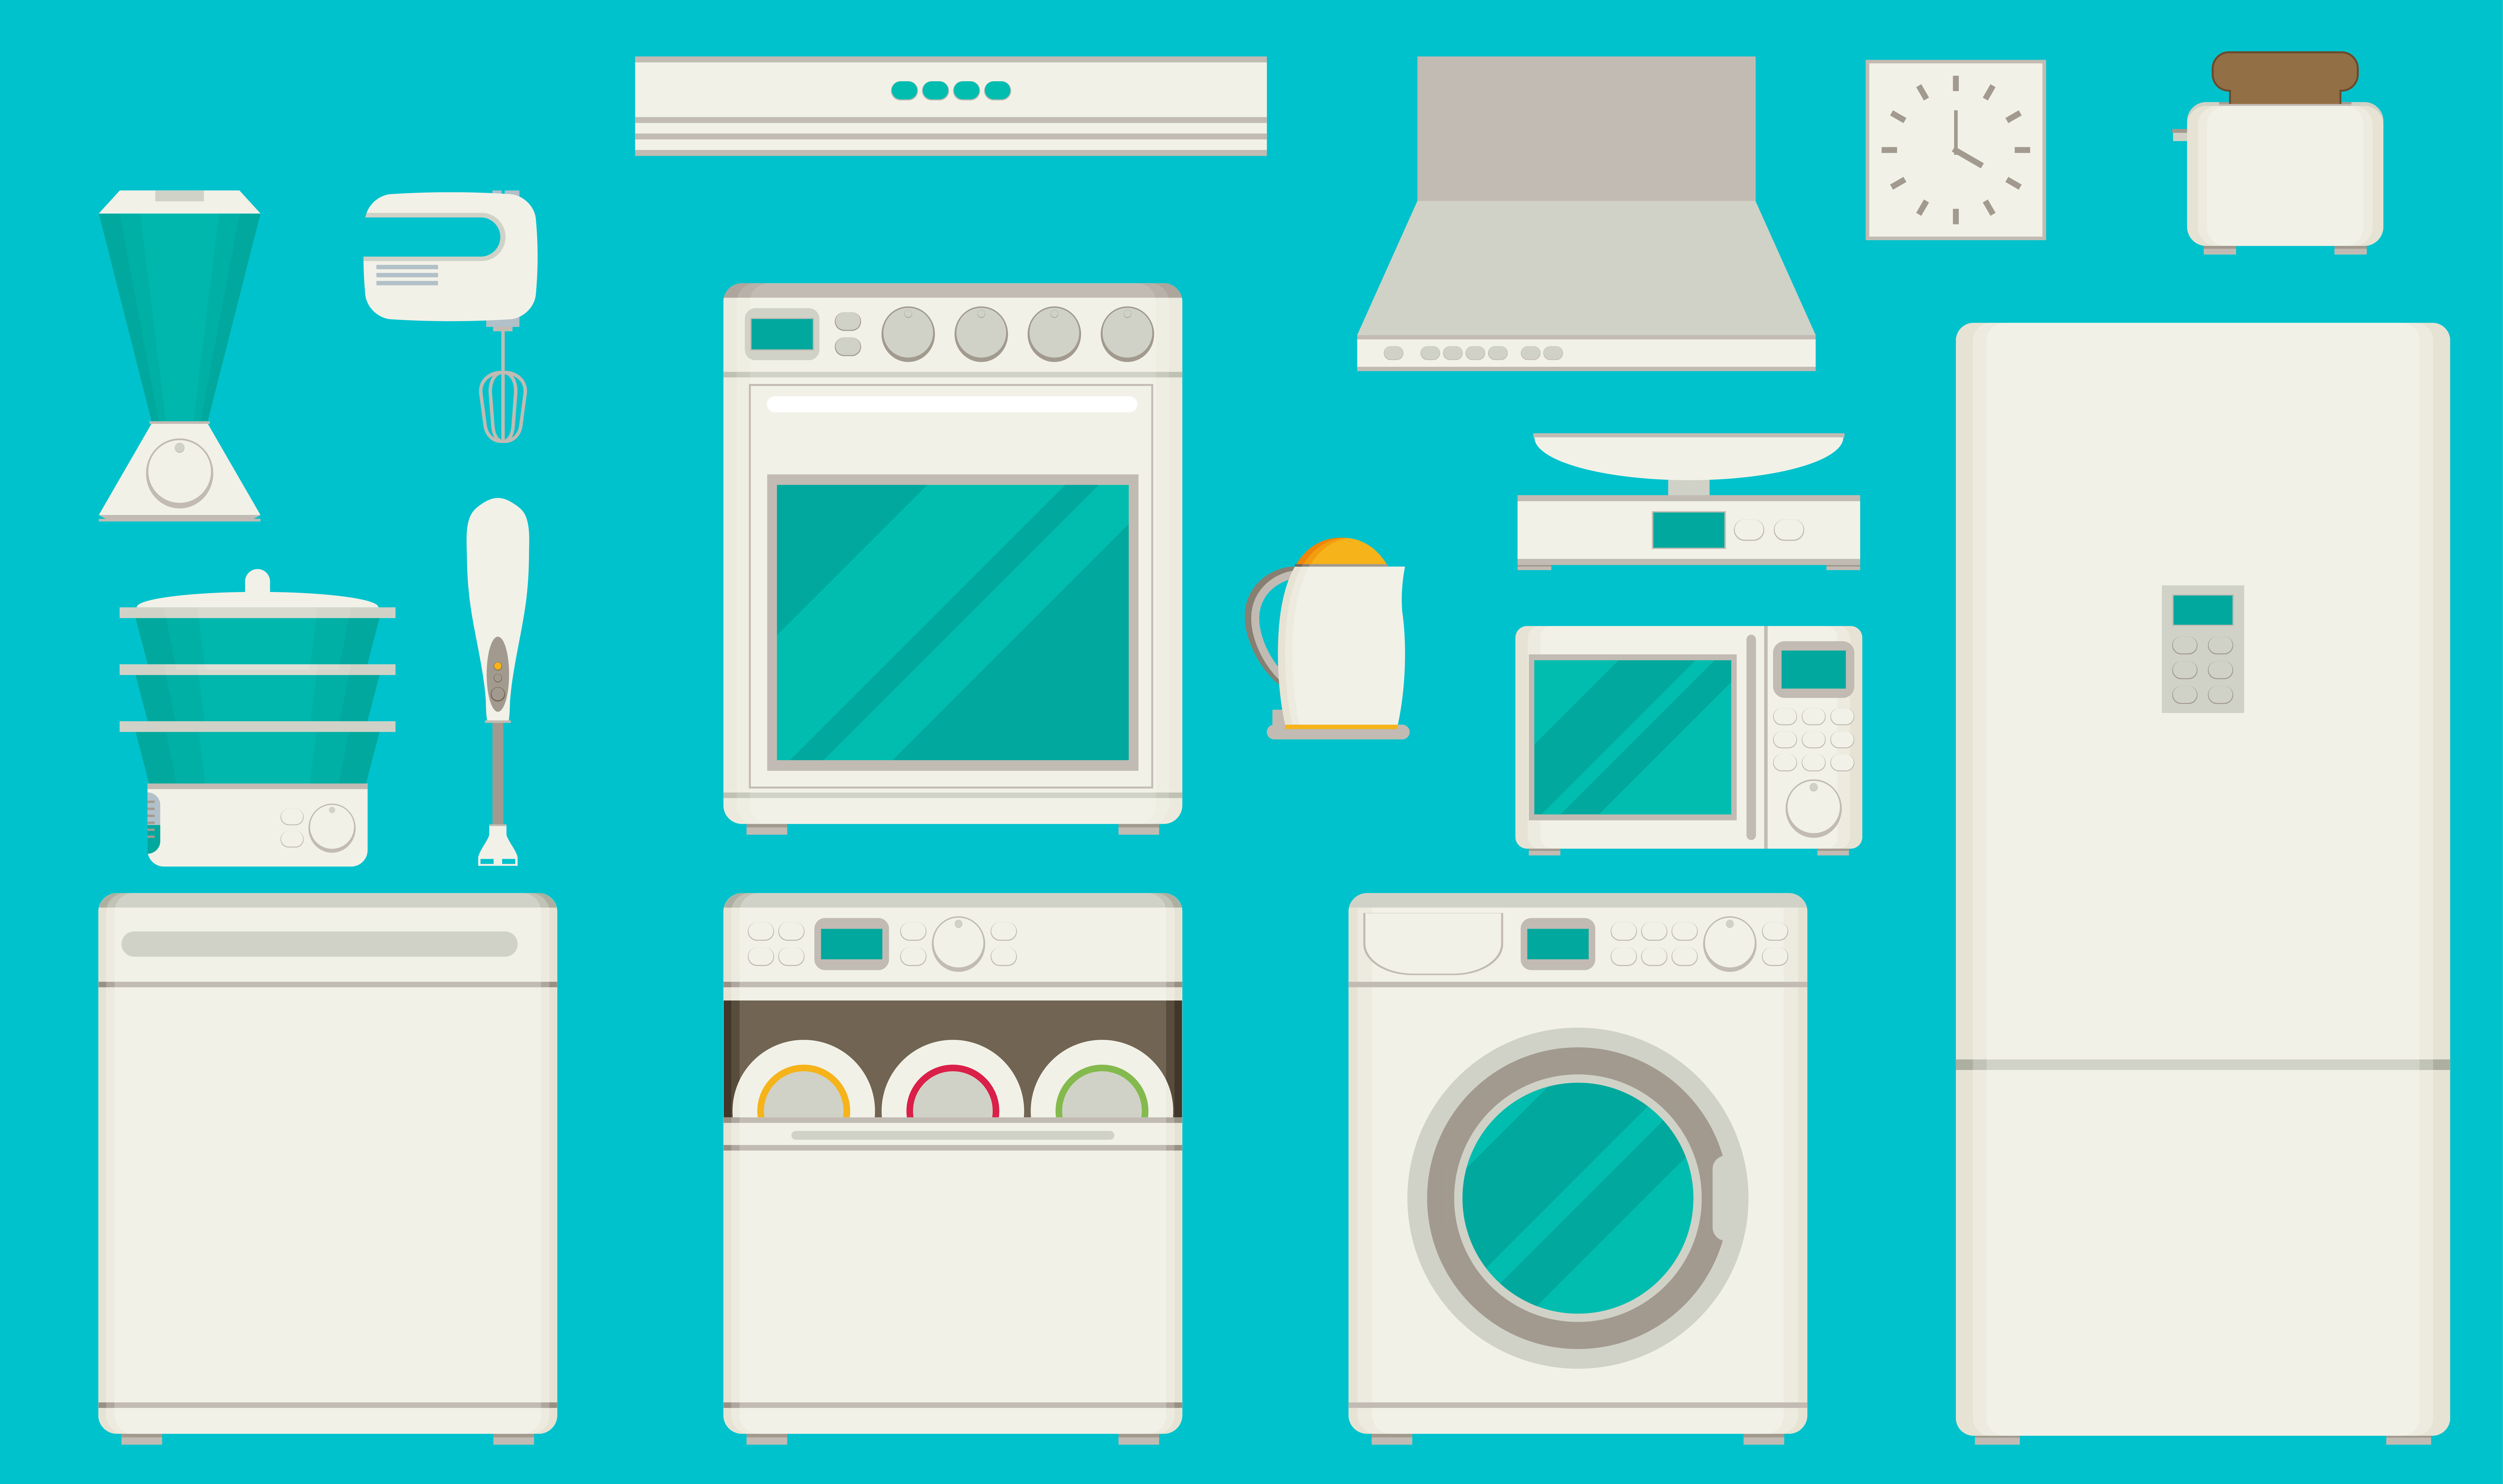 Various household appliances including a dishwasher, washer, over, microwave, fridge, and many others are represented with icons against a light blue background.